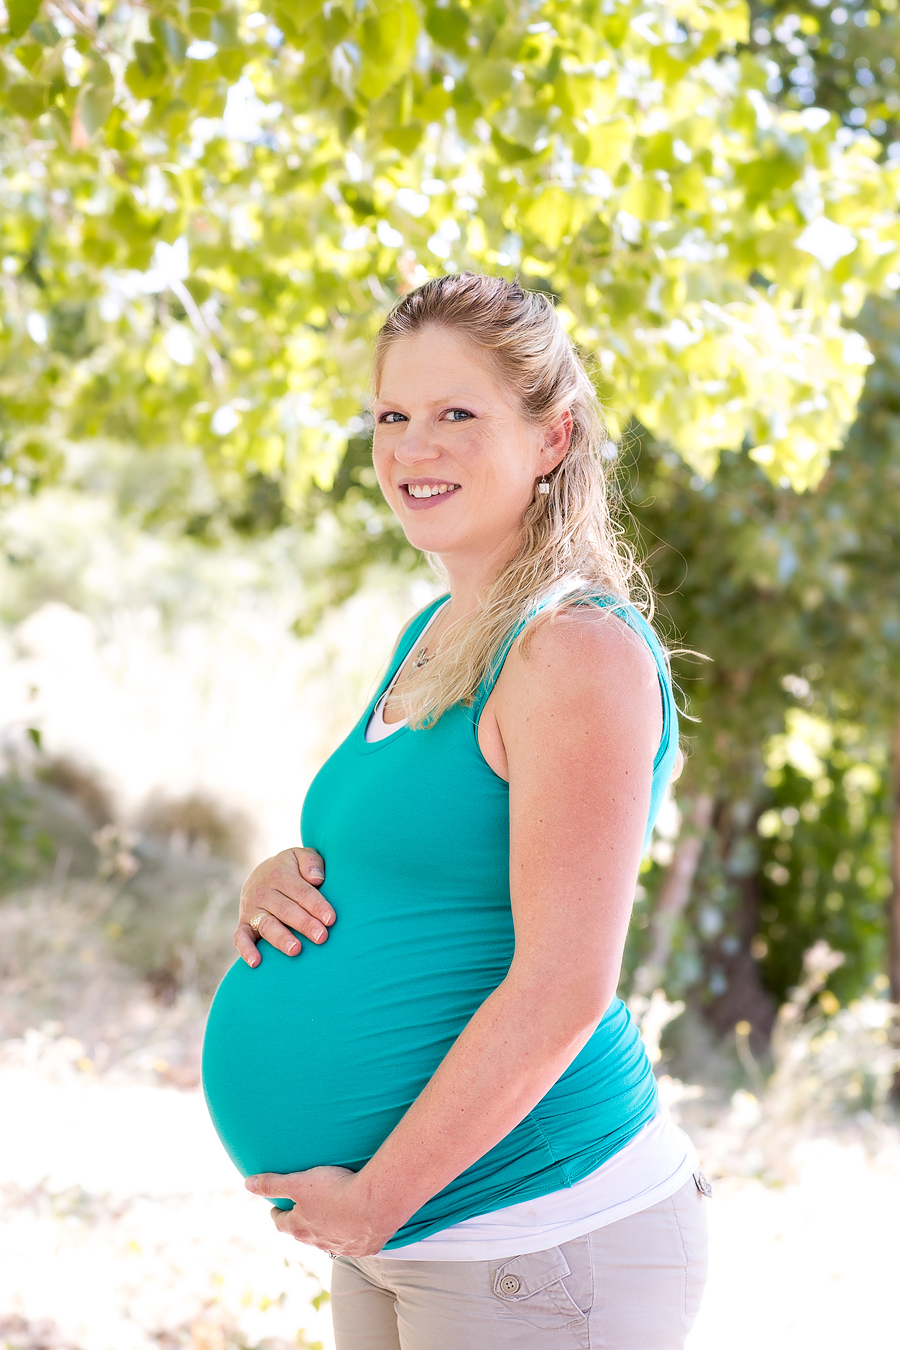 WEB Natalie Maternity Delilah 20140620-016-Edit